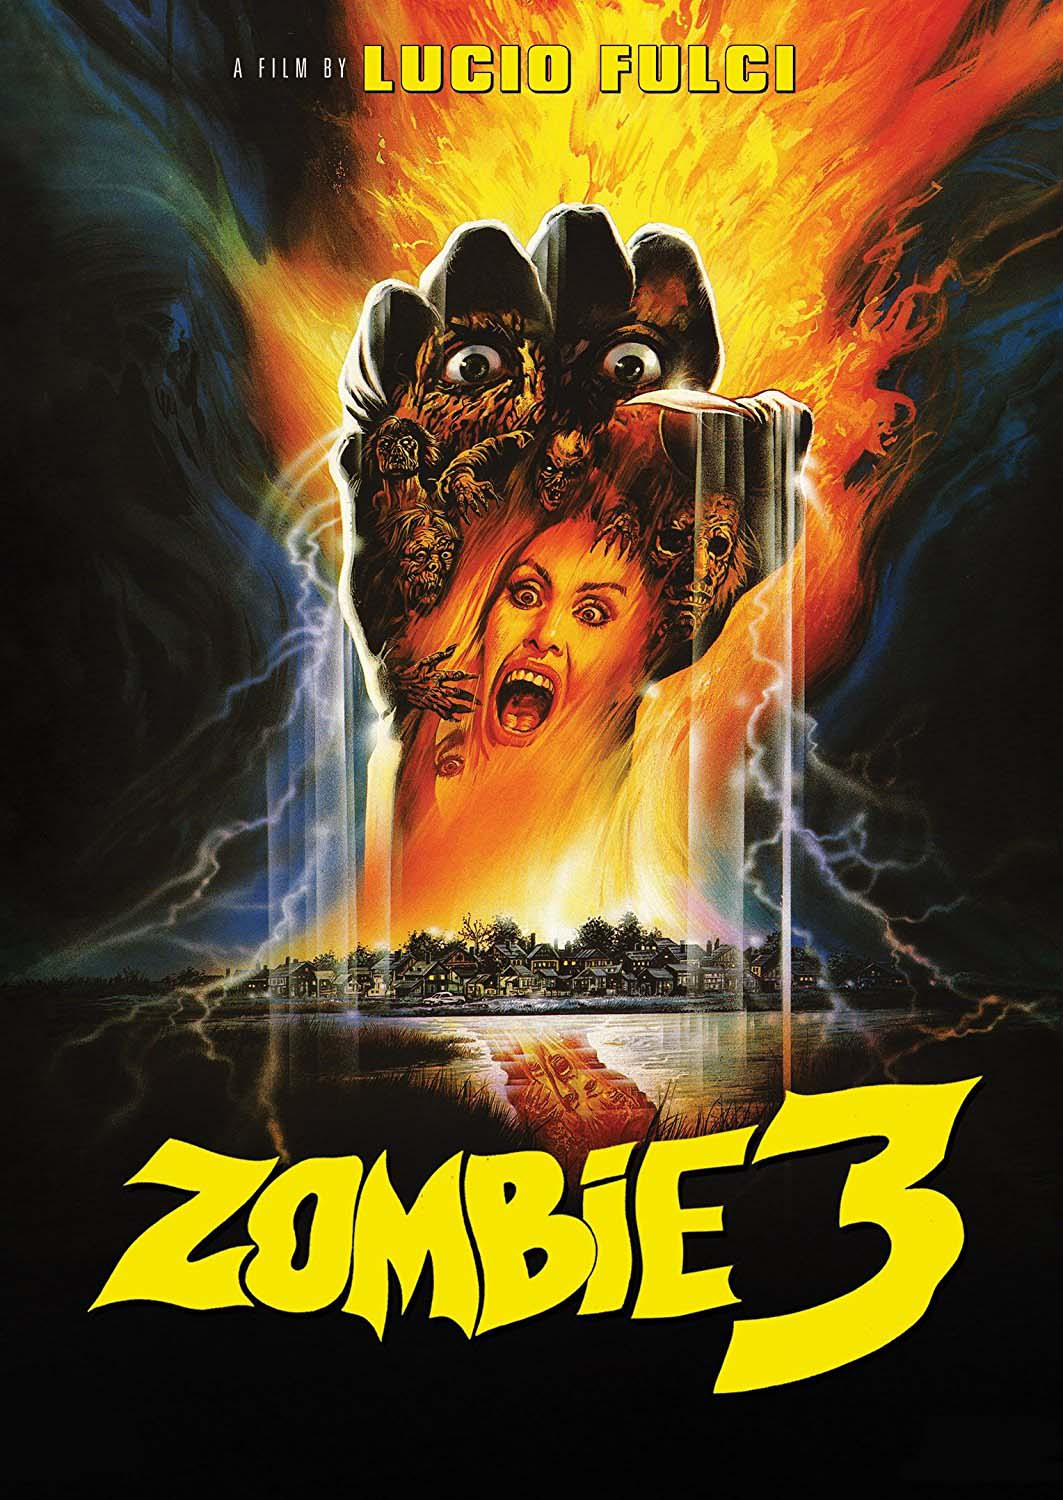 Zombie 3 (1988) - IMDb on old fashioned home design, new mexico home design, earthquake home design, macabre home design, hurricane home design, hollywood home design, monster home design,